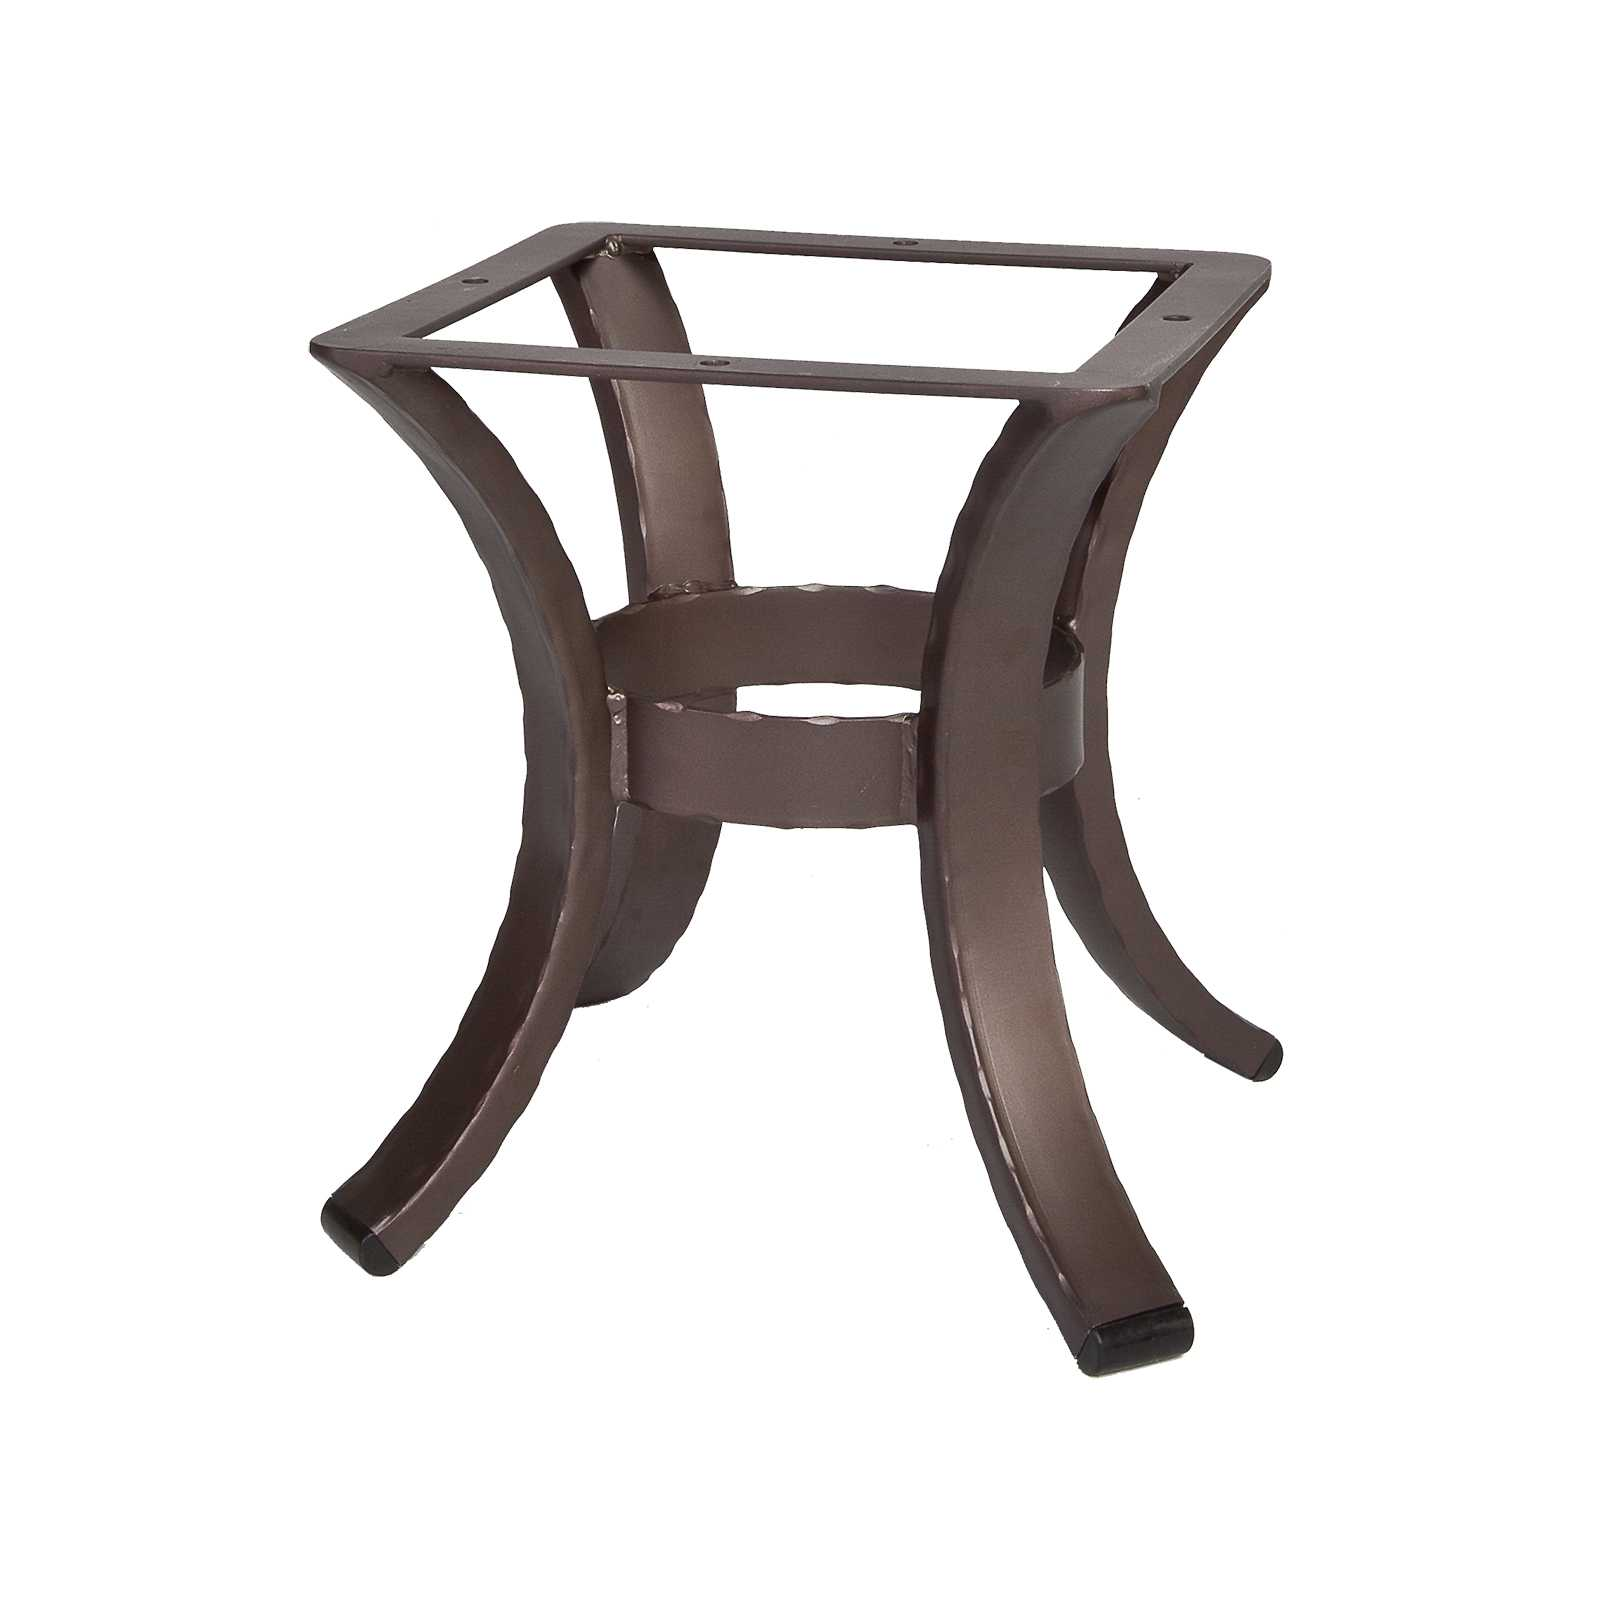 OW Lee Hammered Wrought Iron 01 Side Table Base